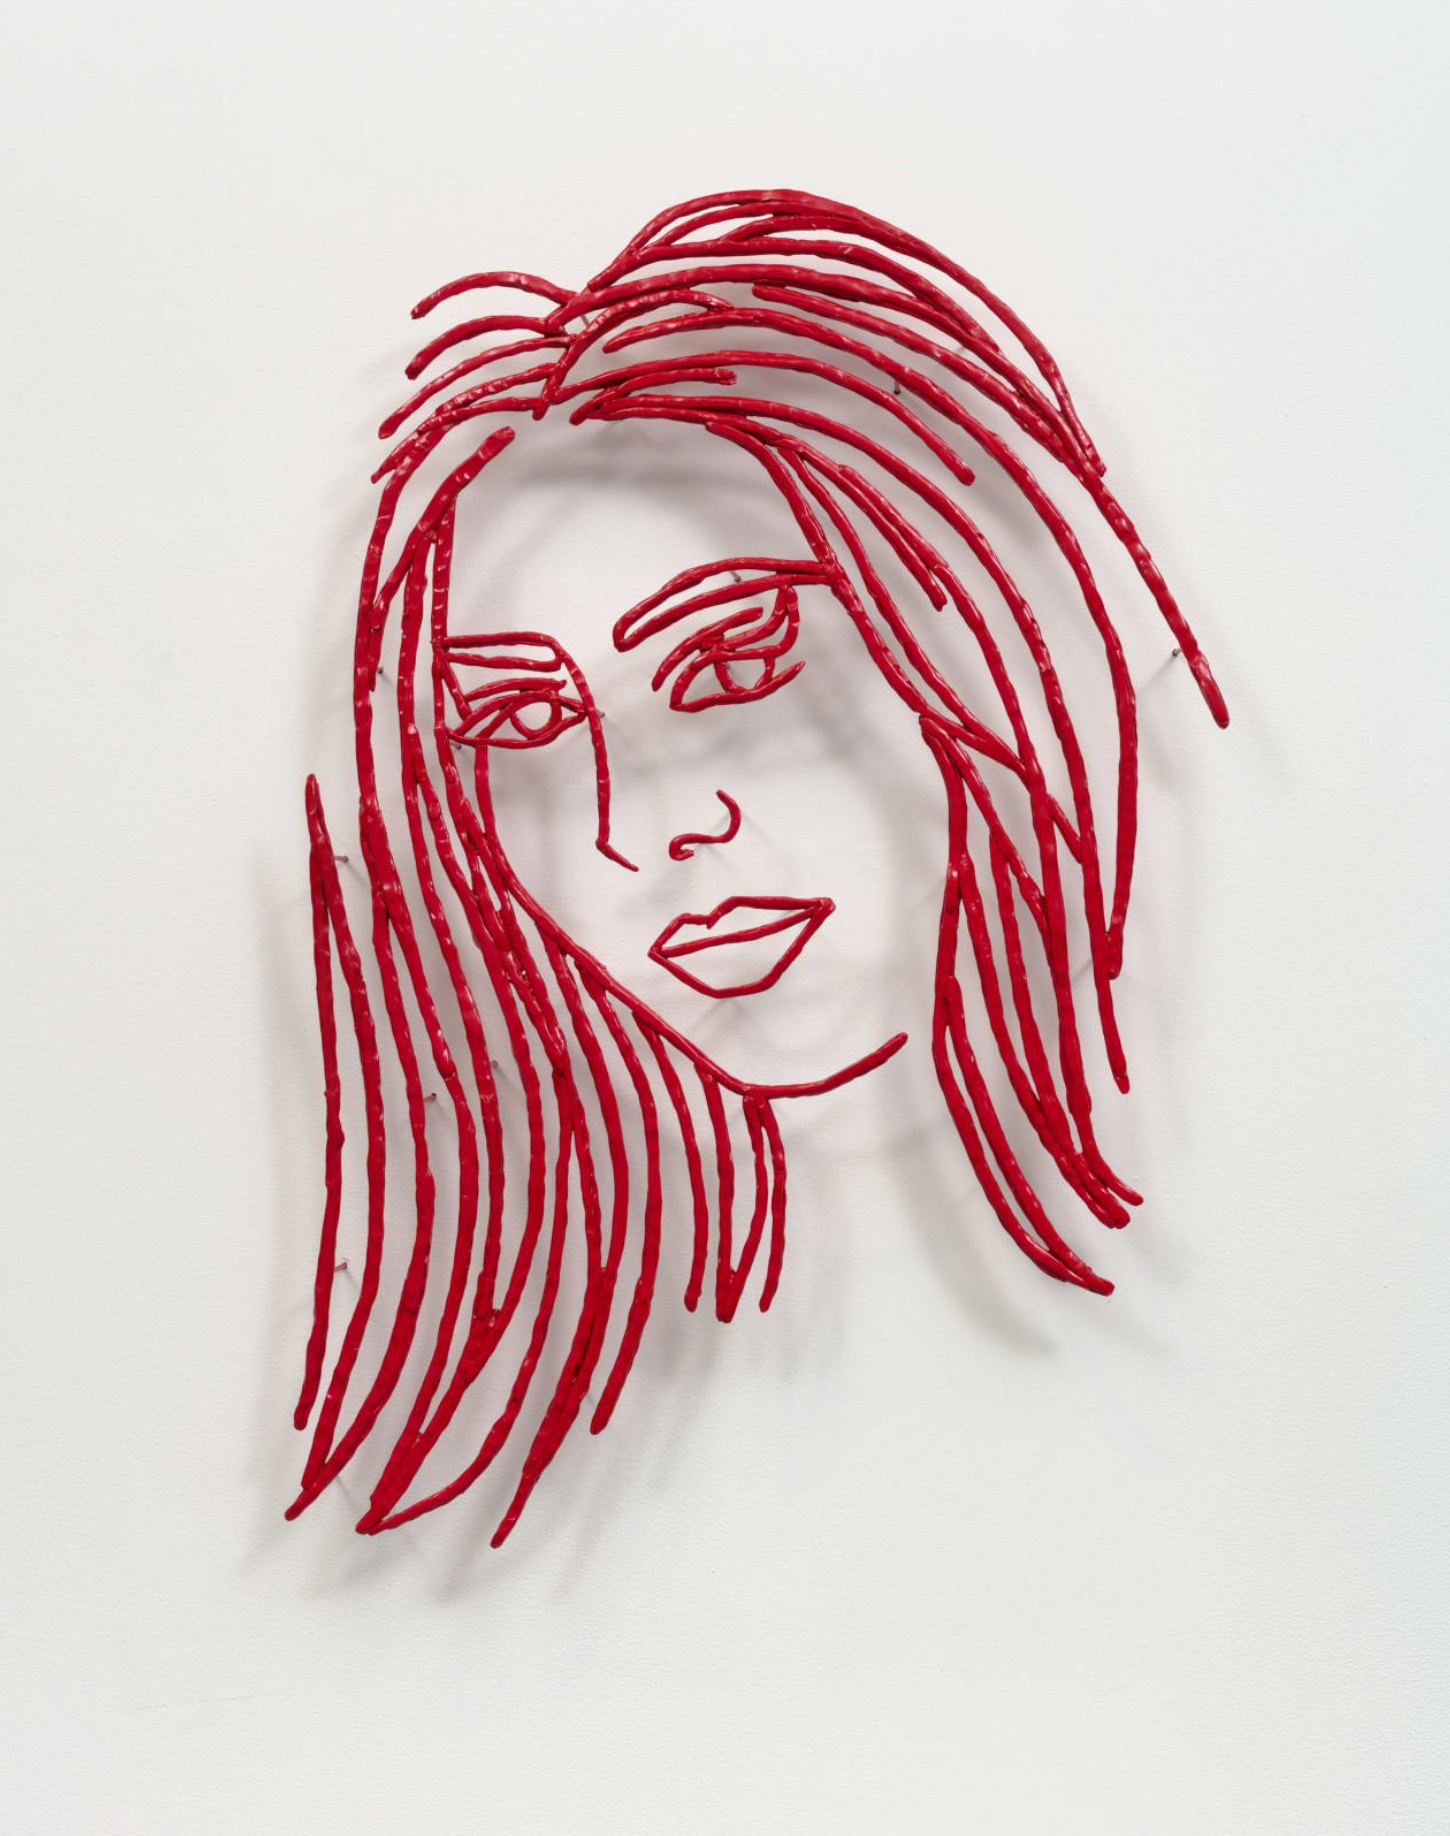 Ghada Amer, The Lady in Red, 2021 Boesky